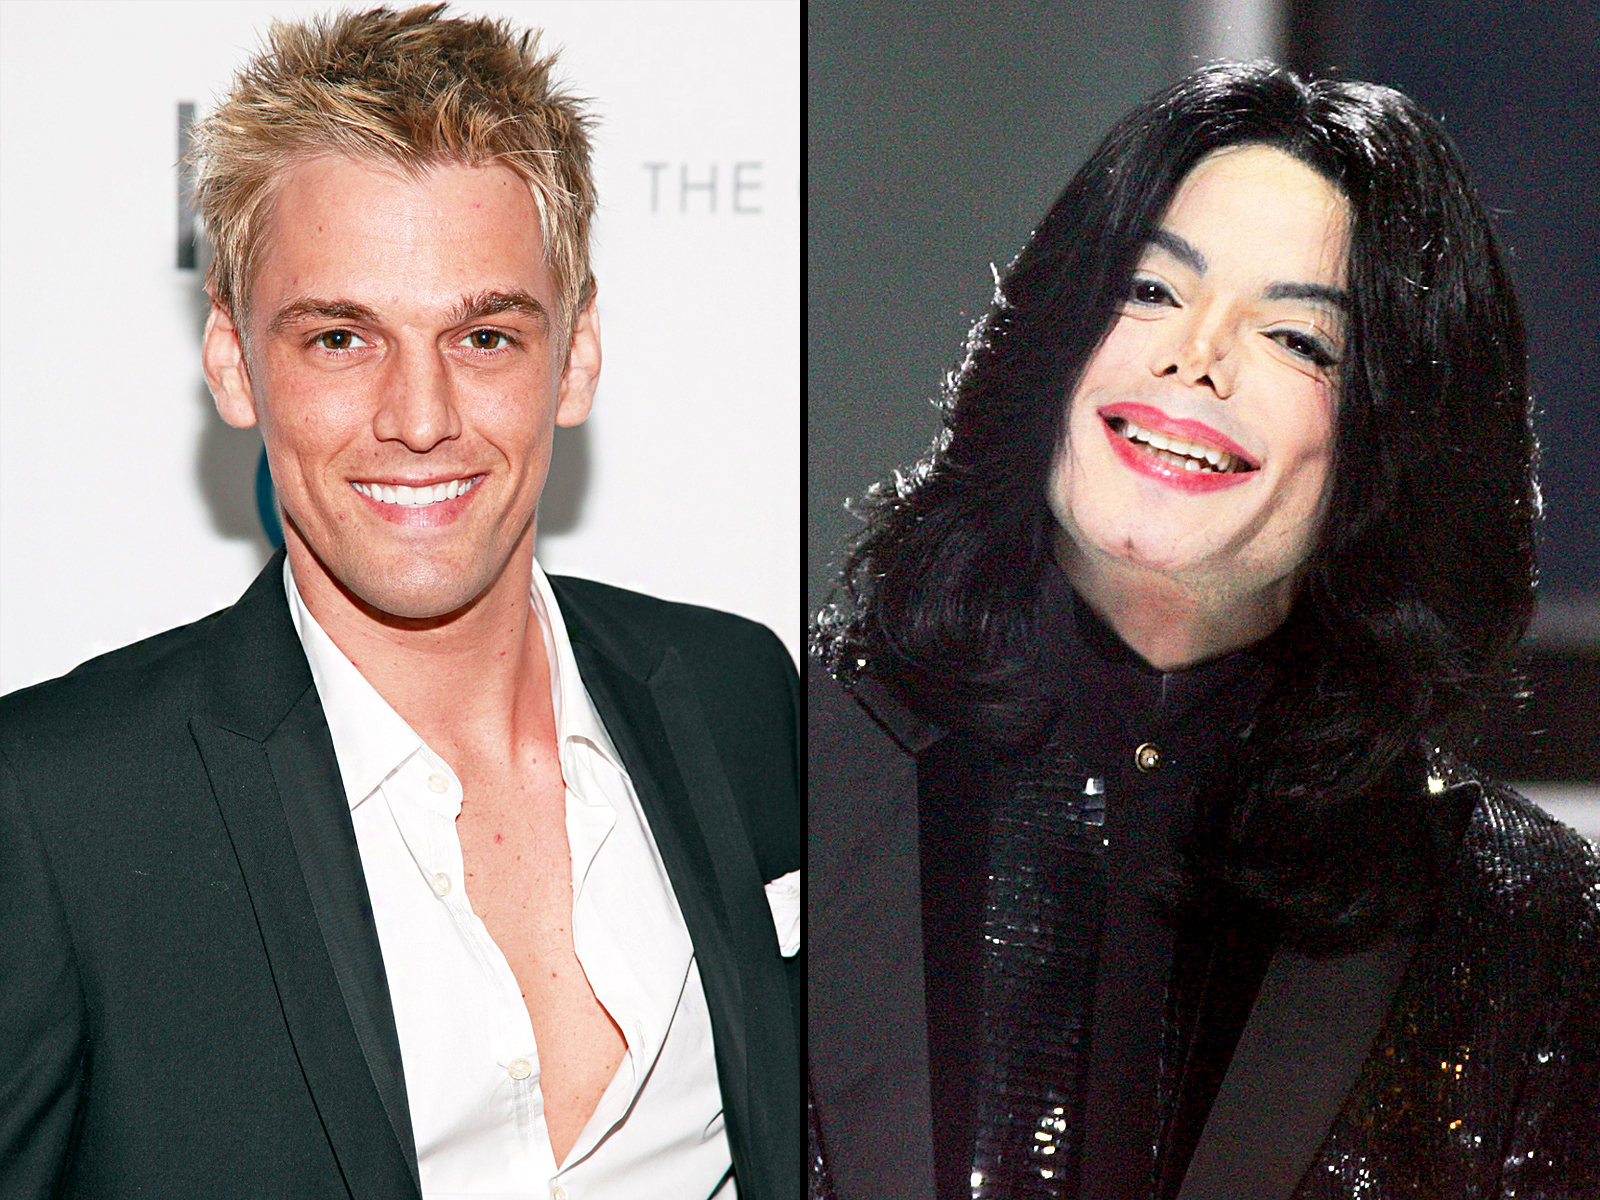 Aaron Carter reflects on friendship with Michael Jackson